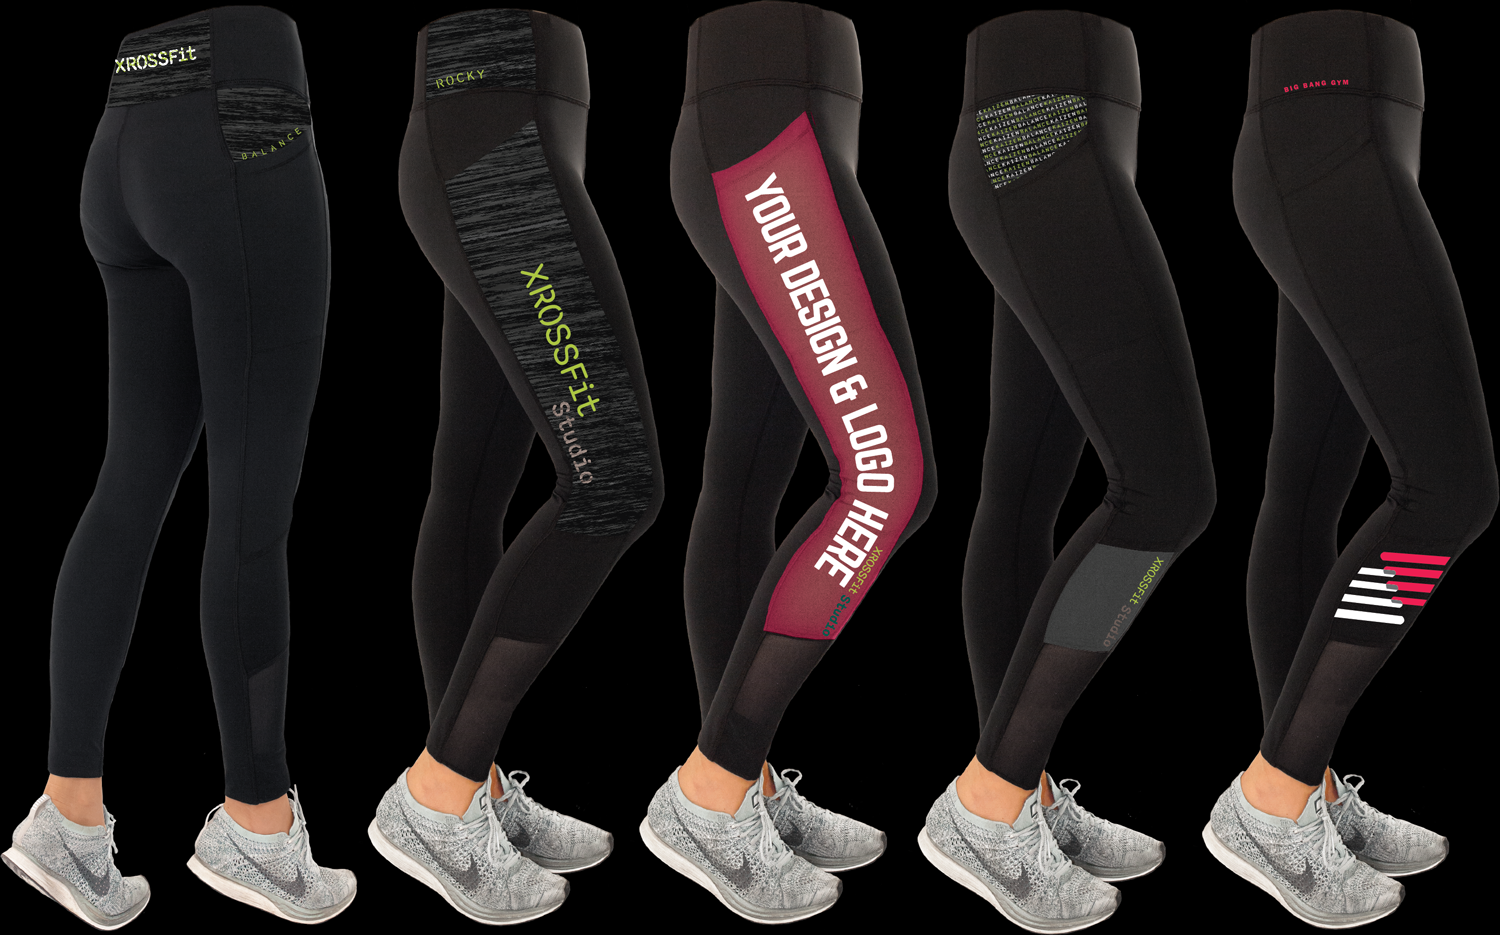 made in usa custom leggings for crossfit gyms and teams